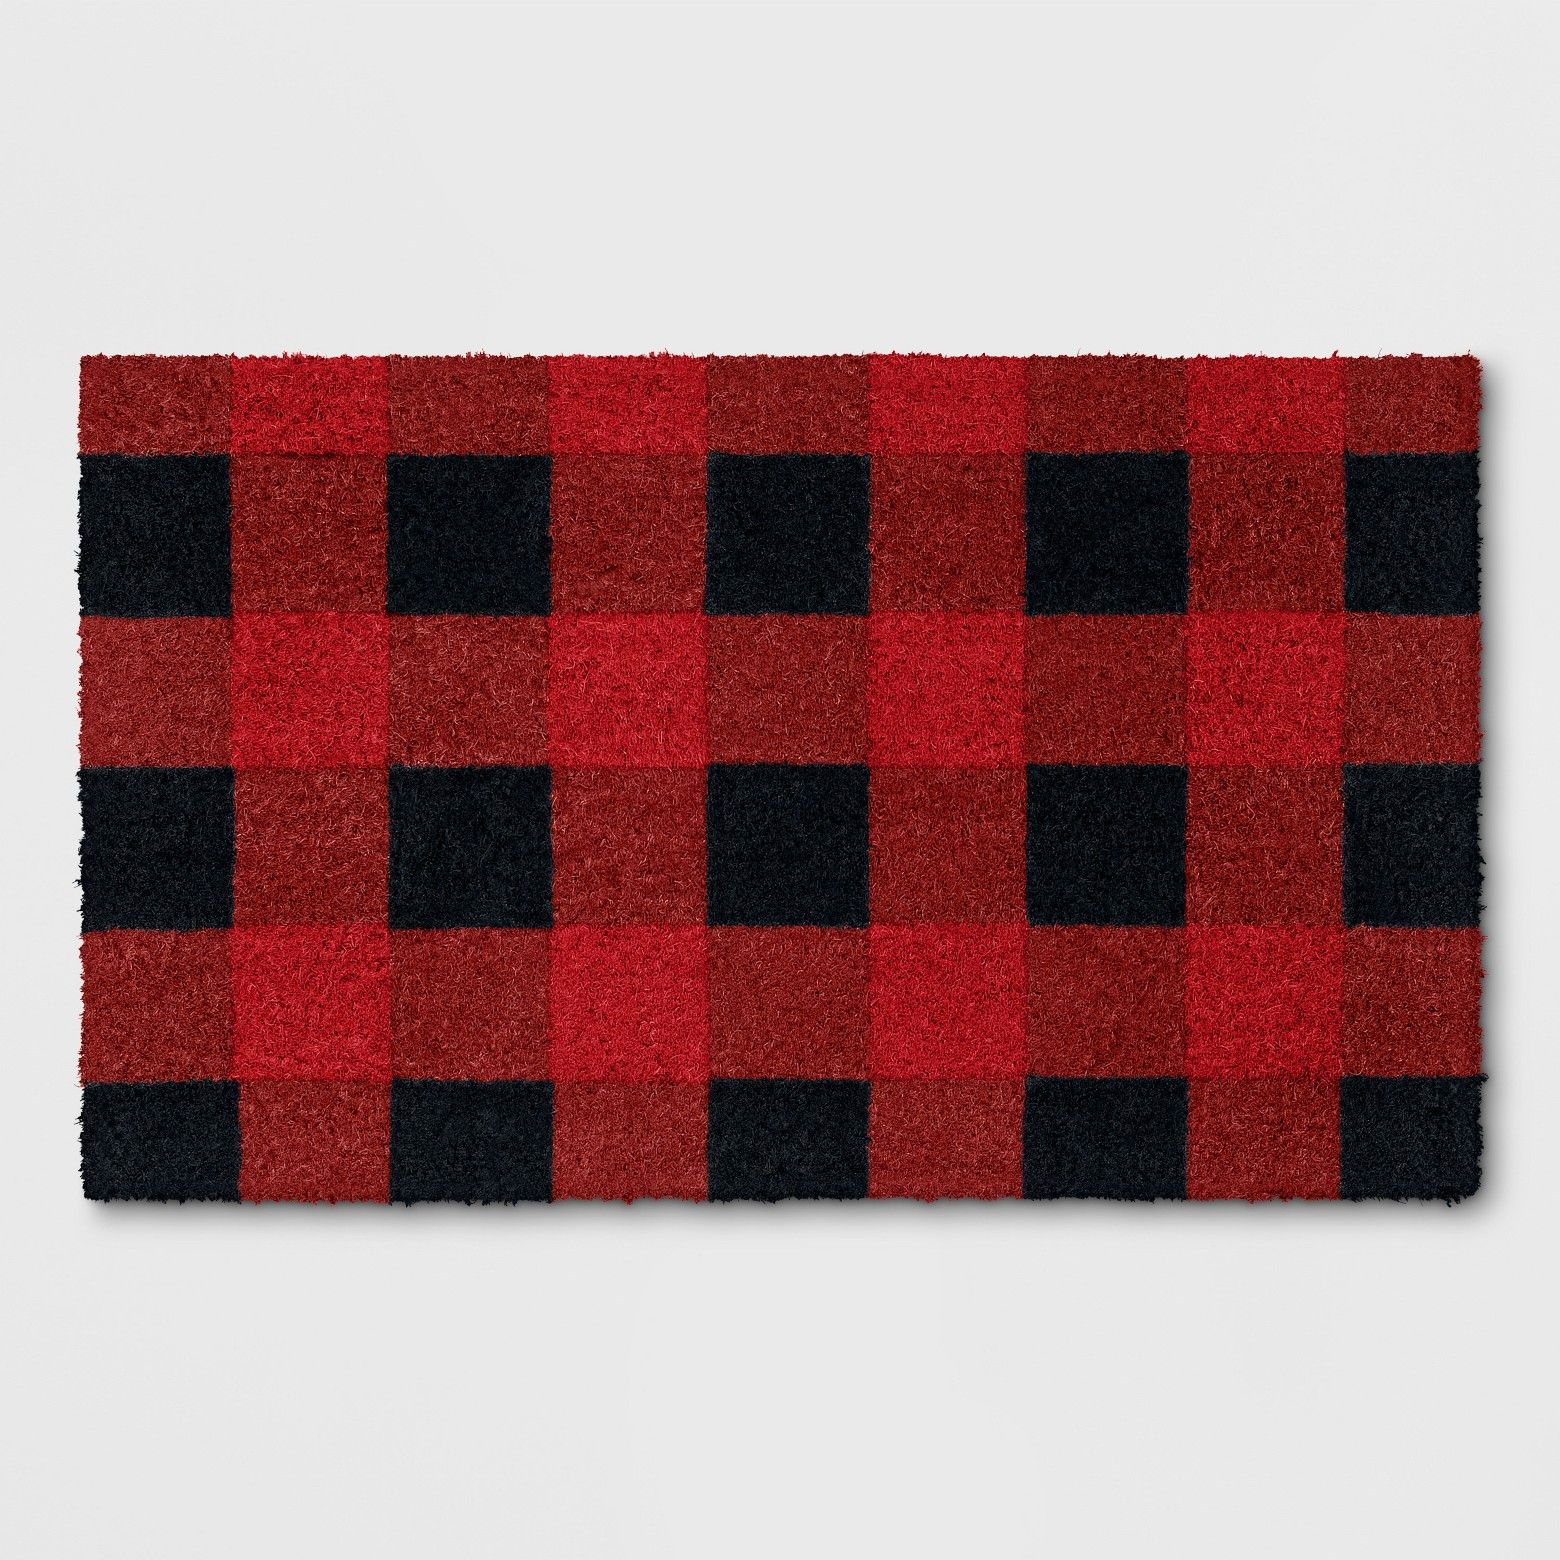 Grab a simple but charming outdoor accent rug with a Red Plaid Accent Rug from Threshold™. This vibrant plaid accent rug will make an eye-catching addition to your porch or doorstep, especially during the holiday season. This accent rug pairs functionality with style perfectly — it features a coir construction that helps keep dirt and debris outside, so your home stays clean and tidy on the inside. This plaid rug will look great with rustic decor and wooden furniture or dur...